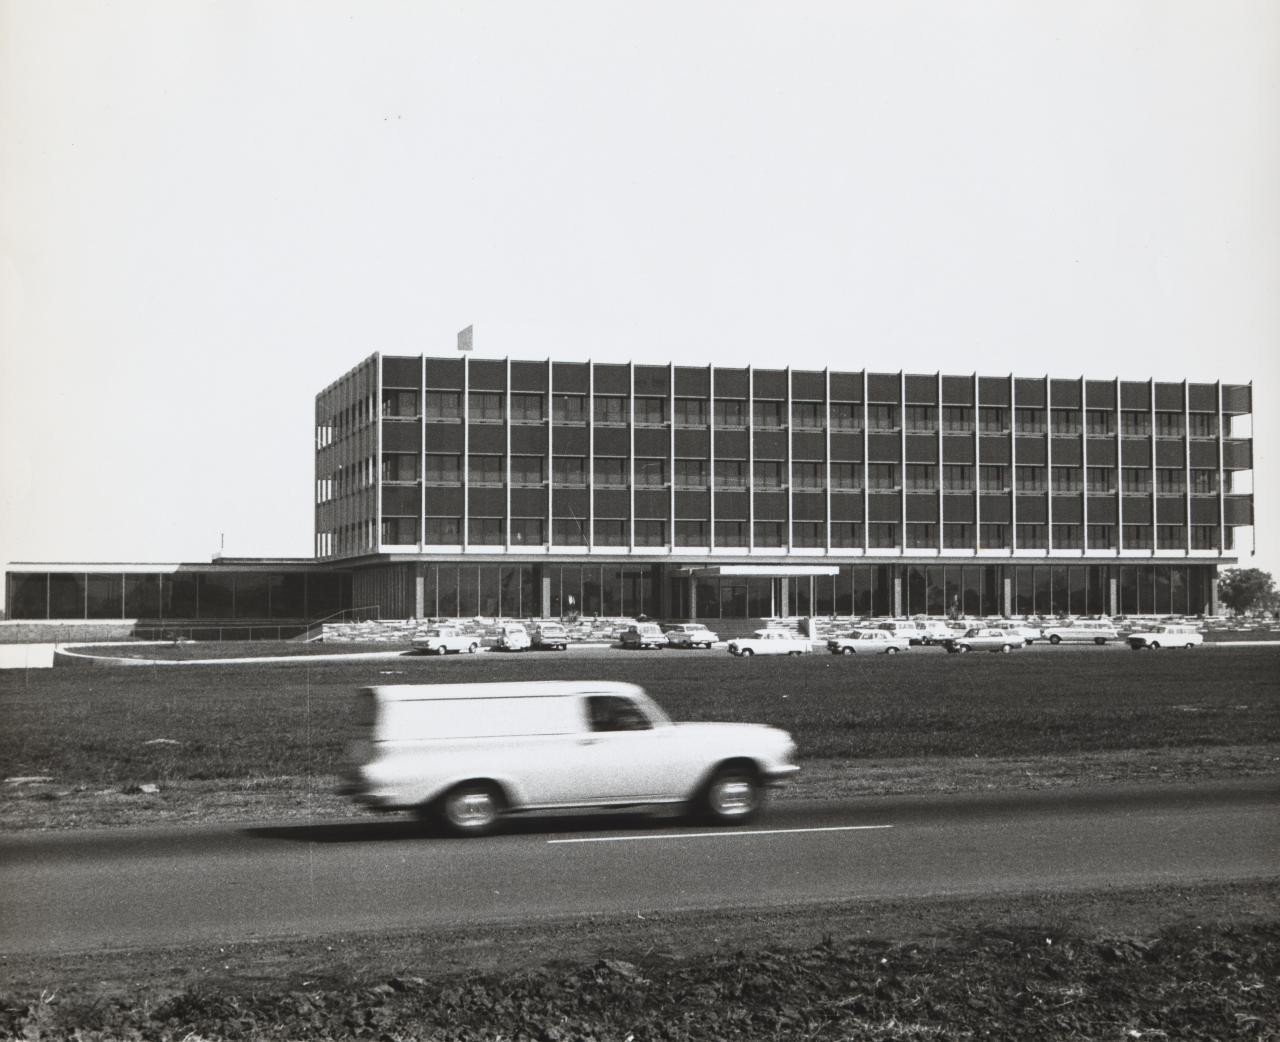 Ford, Broadmeadows (View with moving car)